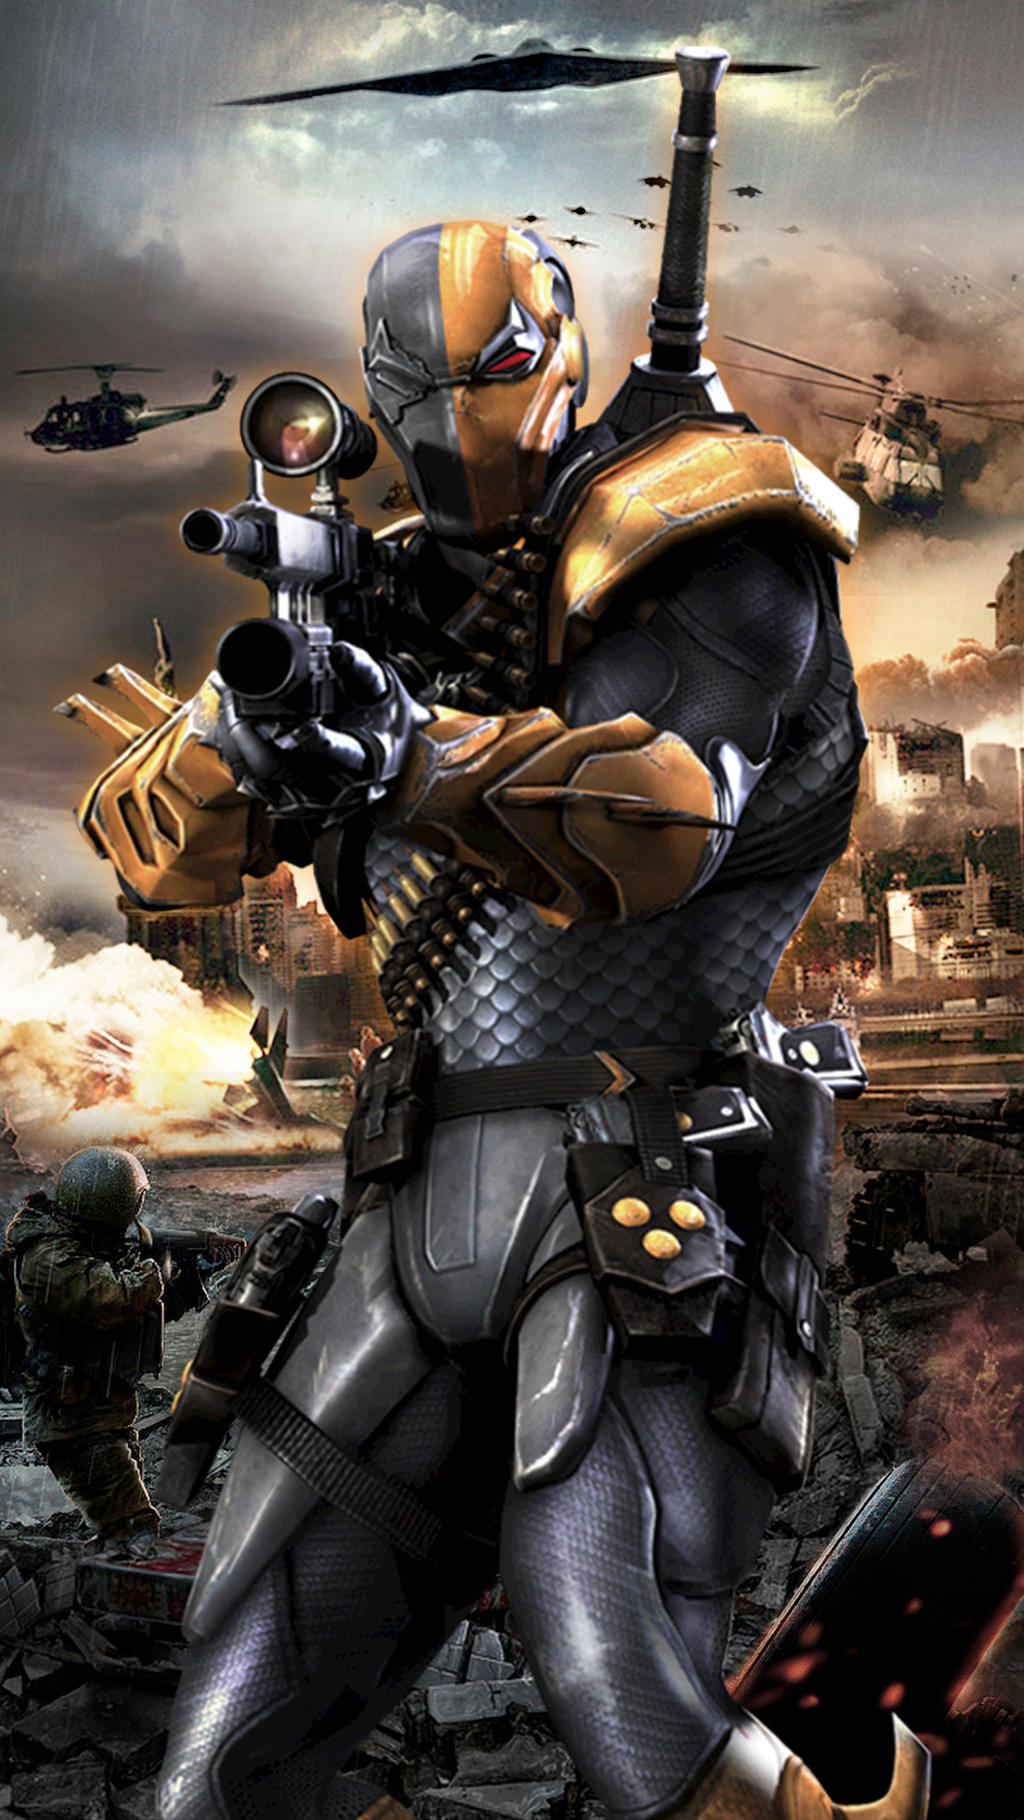 DeathStroke Injustice Gods Among Us By JPGraphic